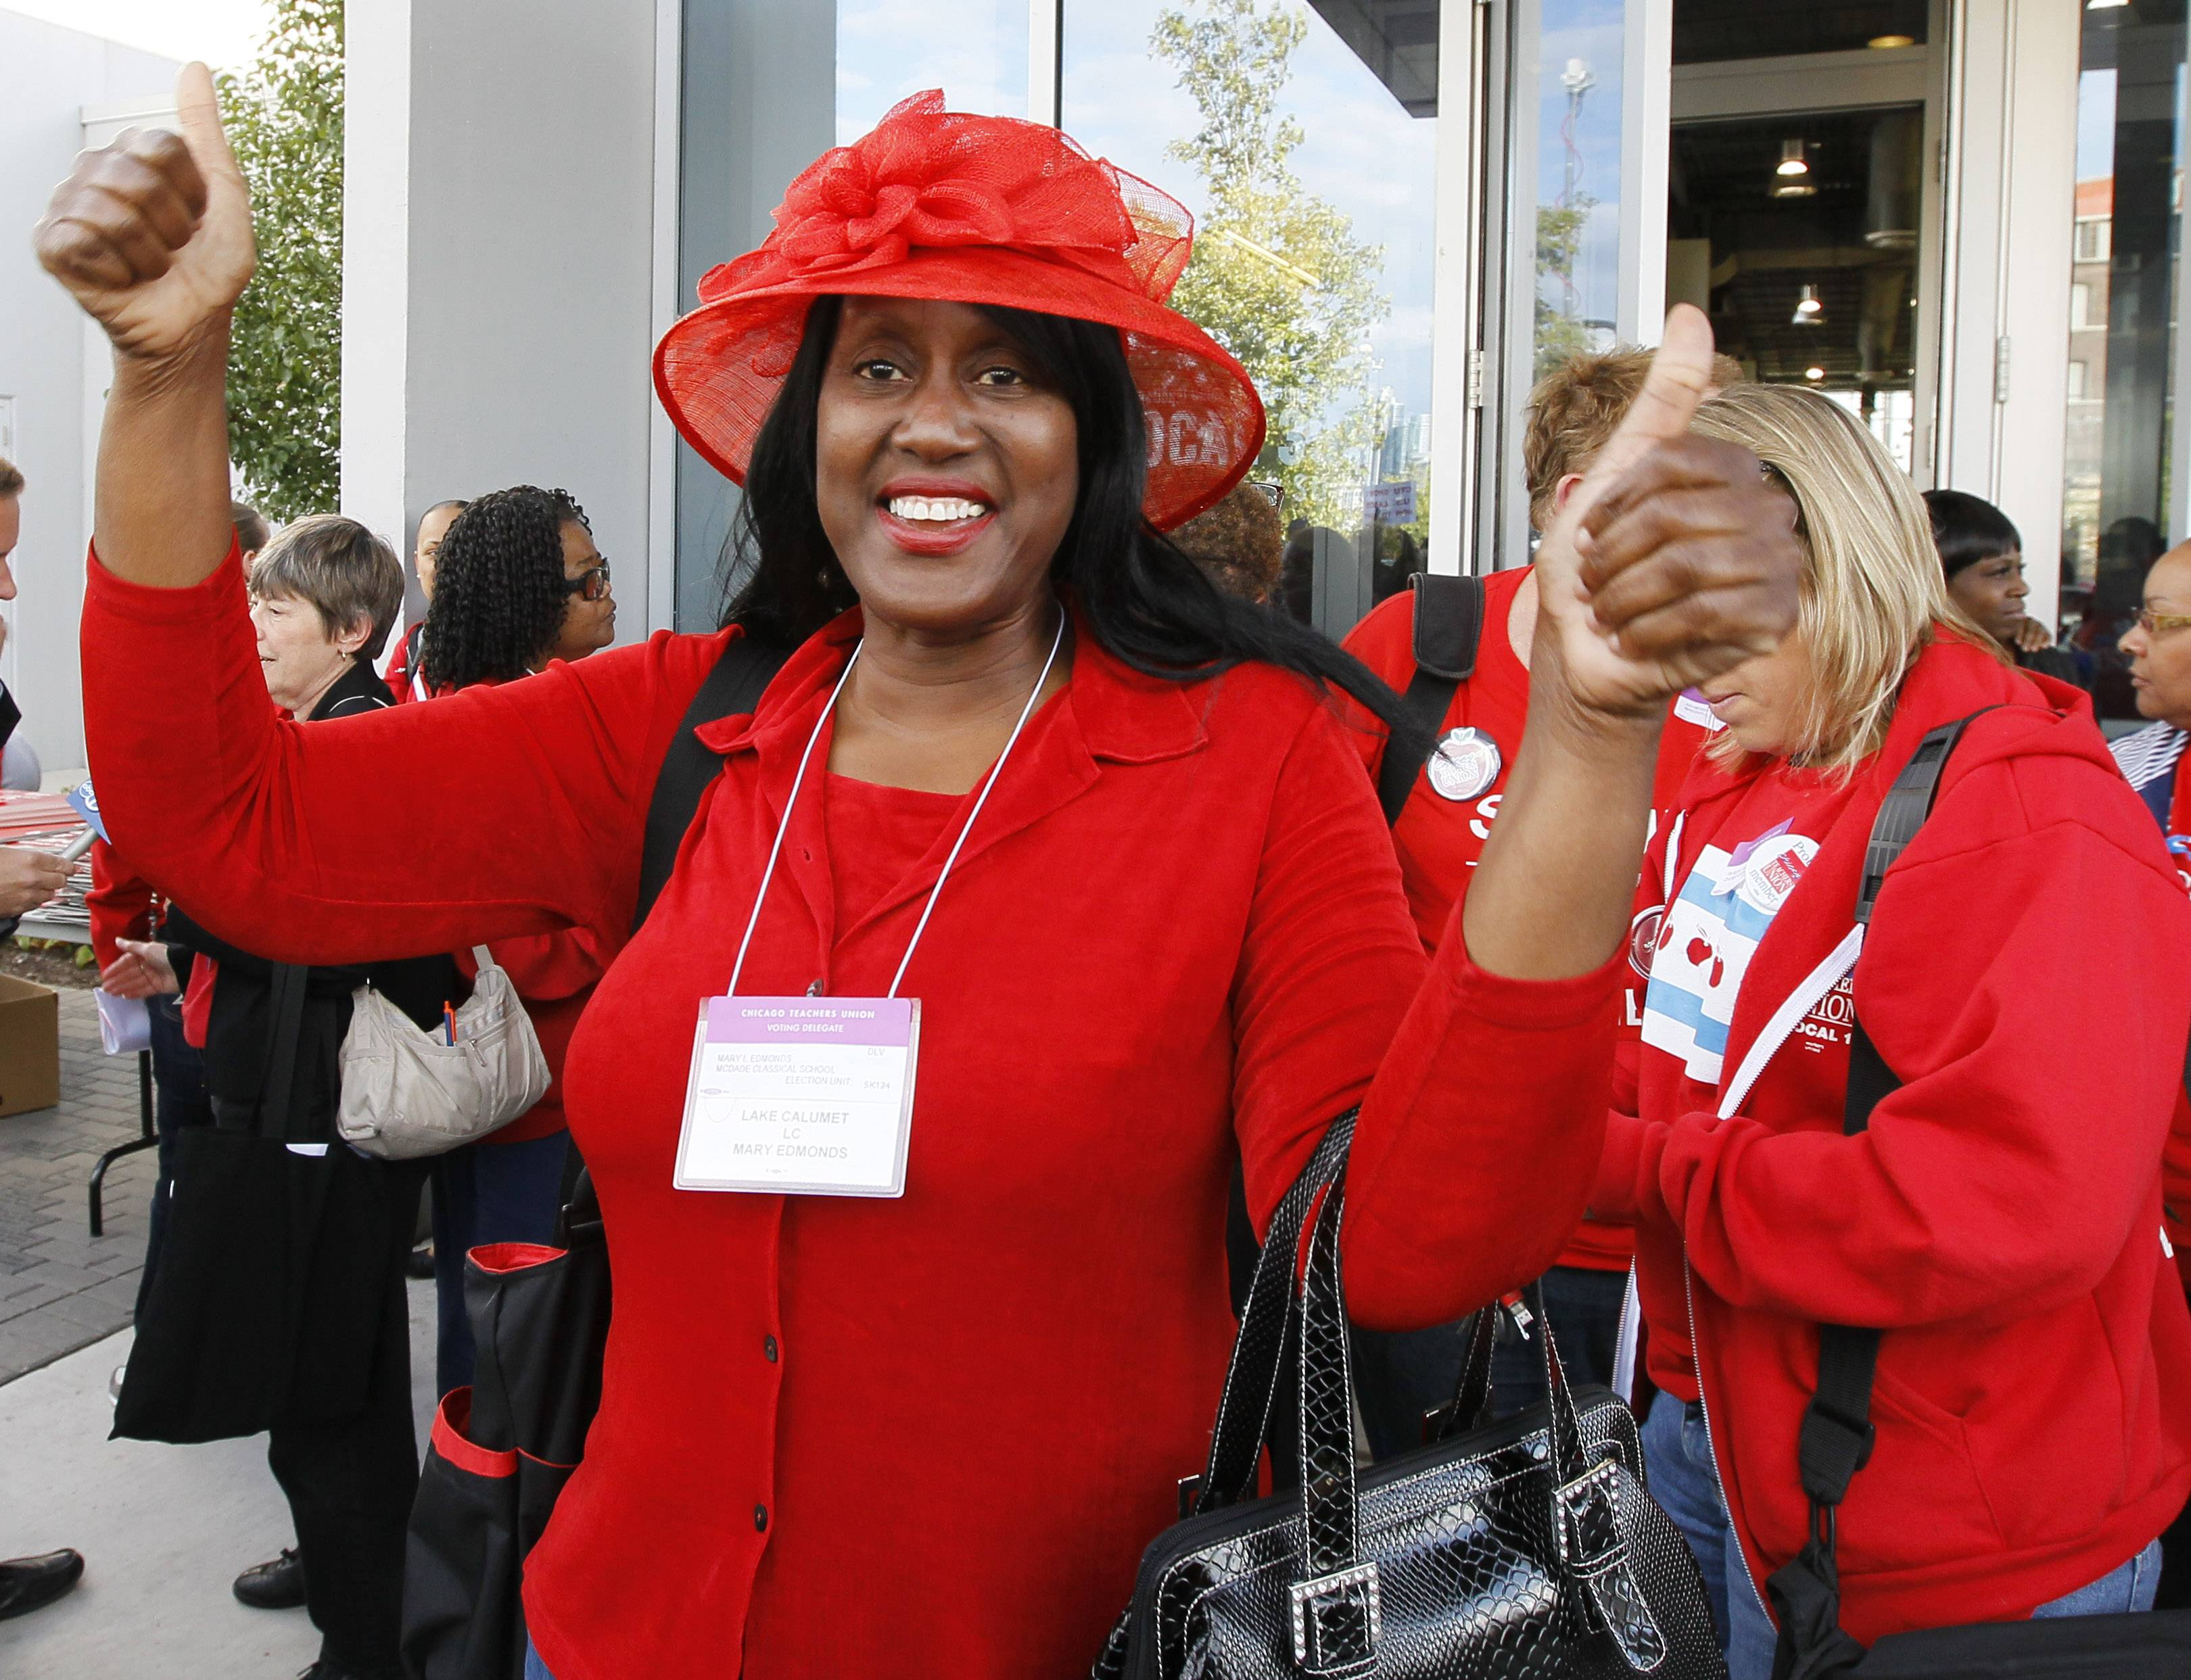 Mary Edmonds, a member of the Chicago Teachers Union's House of Delegates, celebrates Tuesday after the delegates voted to suspend the strike against the school district. The city's teachers agreed to return to the classroom after more than a week on the picket lines, ending a spiteful stalemate with Mayor Rahm Emanuel that put teacher evaluations and job security at the center of a national debate about the future of public education.